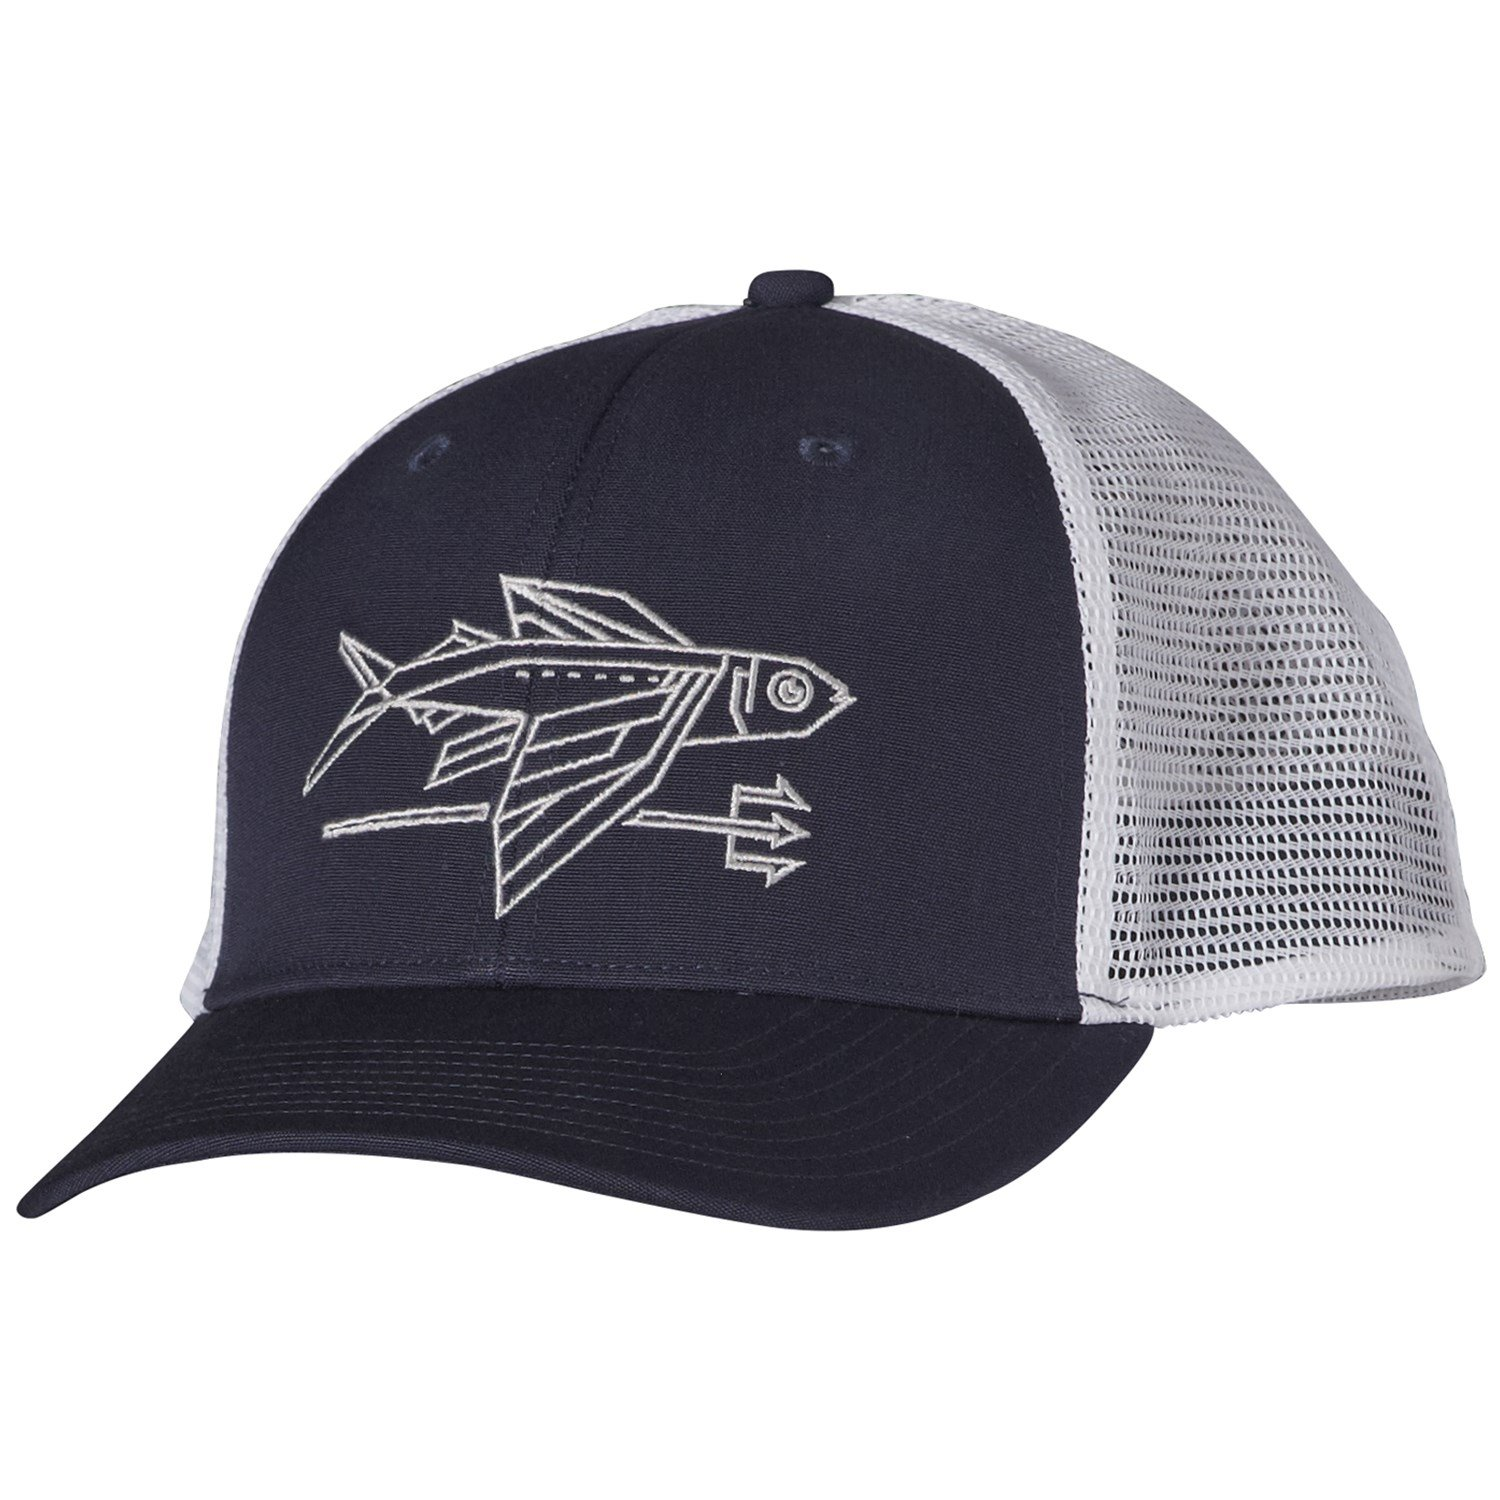 Patagonia Geodesic Flying Fish Trucker Hat  a2fb452766f